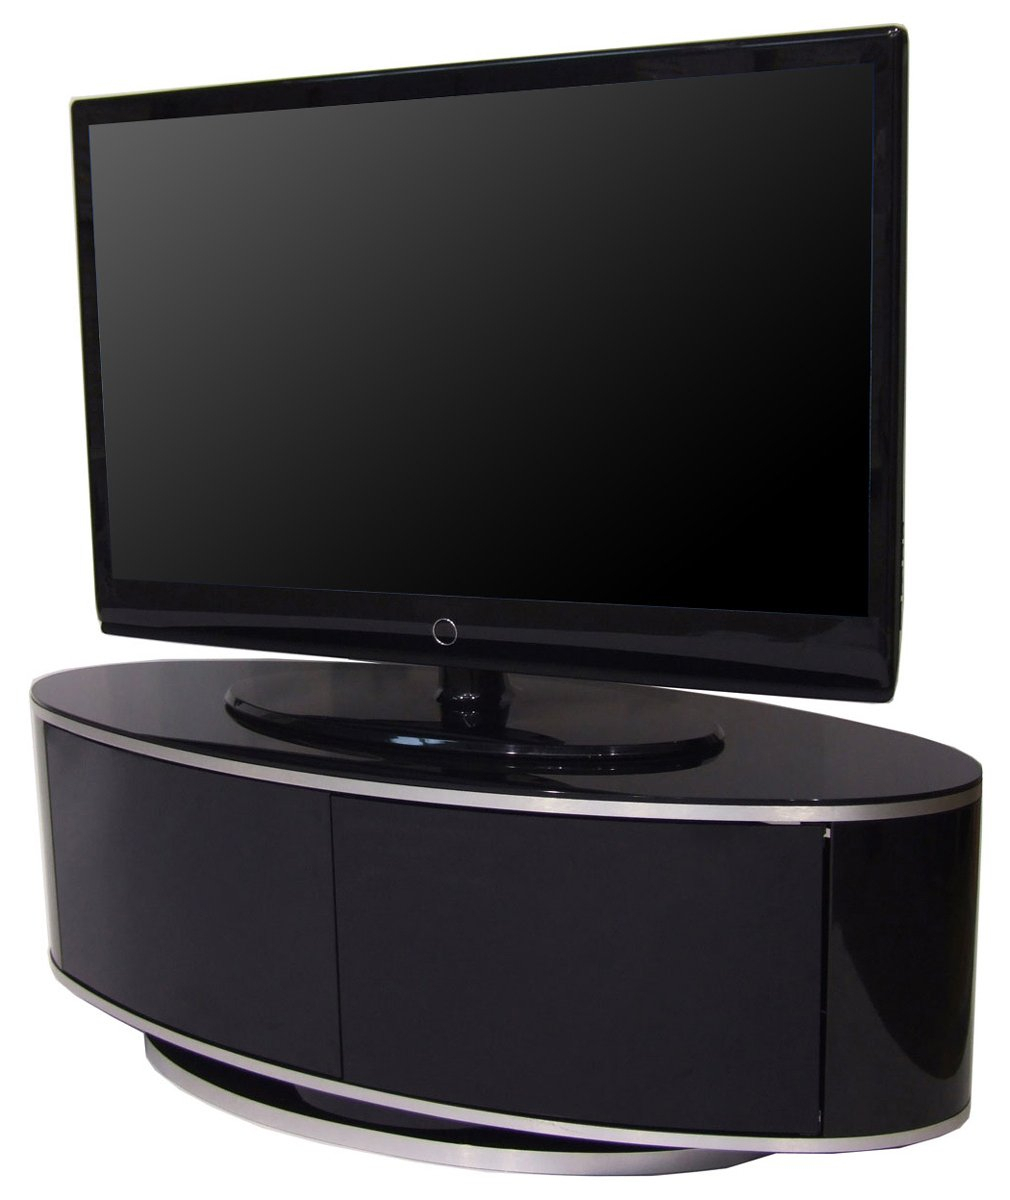 Luna High Gloss Black Oval Tv Cabinet • Patio Ideas Pertaining To Oval Tv Unit (View 1 of 15)